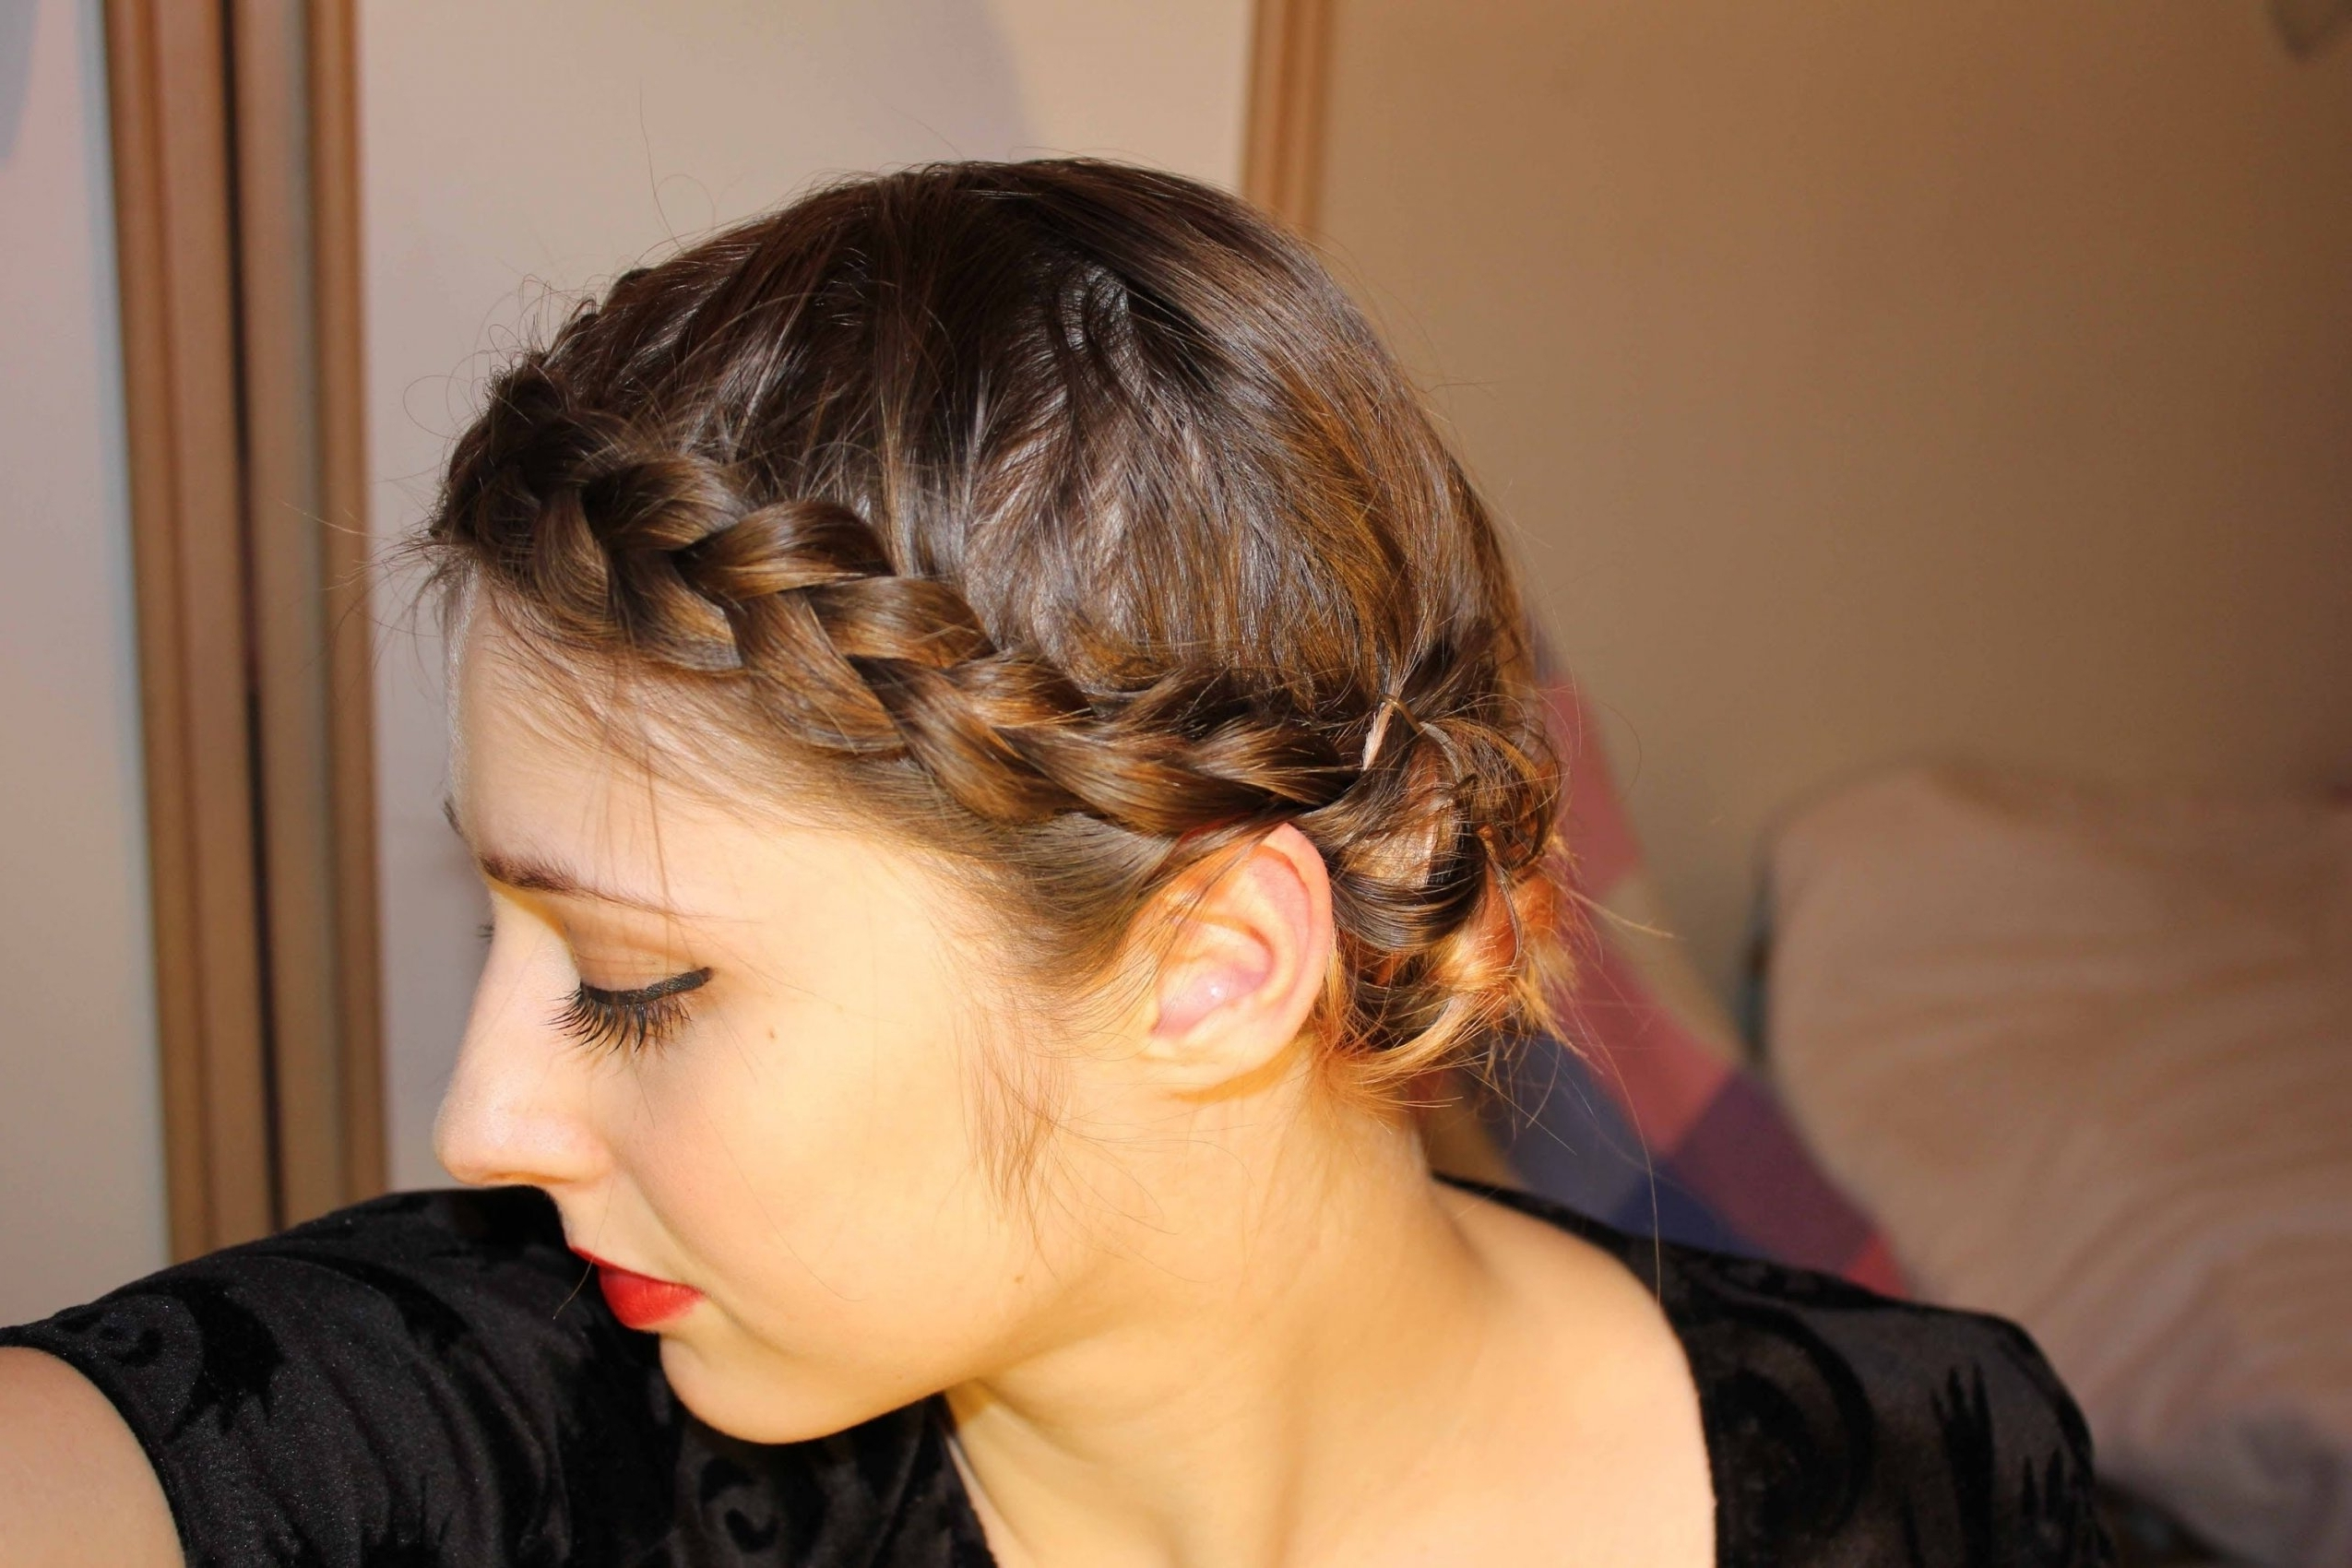 Hairstyles For Fine Thin Hair Easy Braided Updo For Short Fine Inside Updos For Long Thin Hair (View 10 of 15)